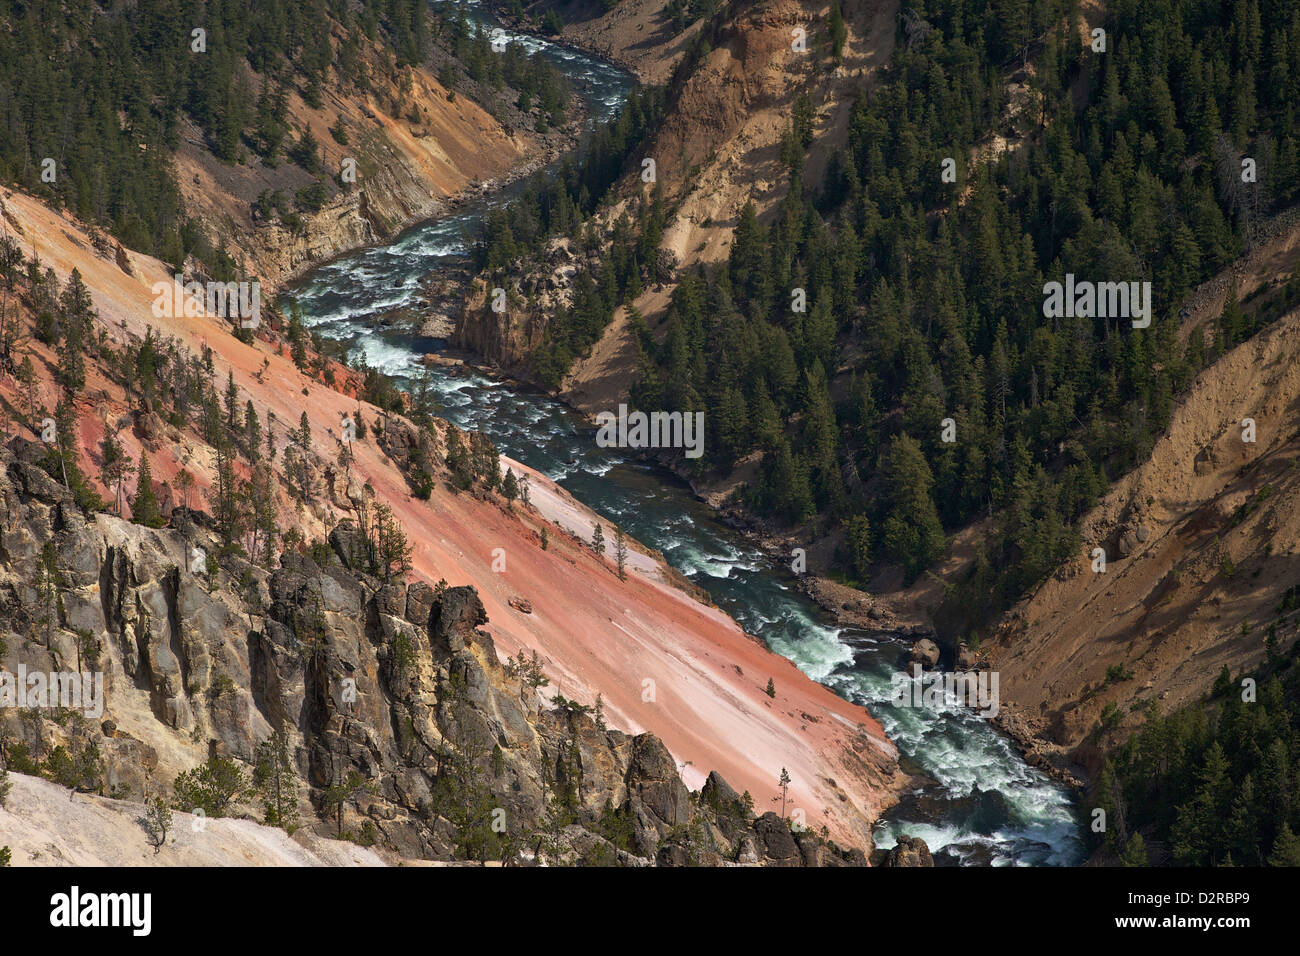 Grand Canyon of the Yellowstone River, from Inspiration Point, Yellowstone National Park, Wyoming, USA - Stock Image